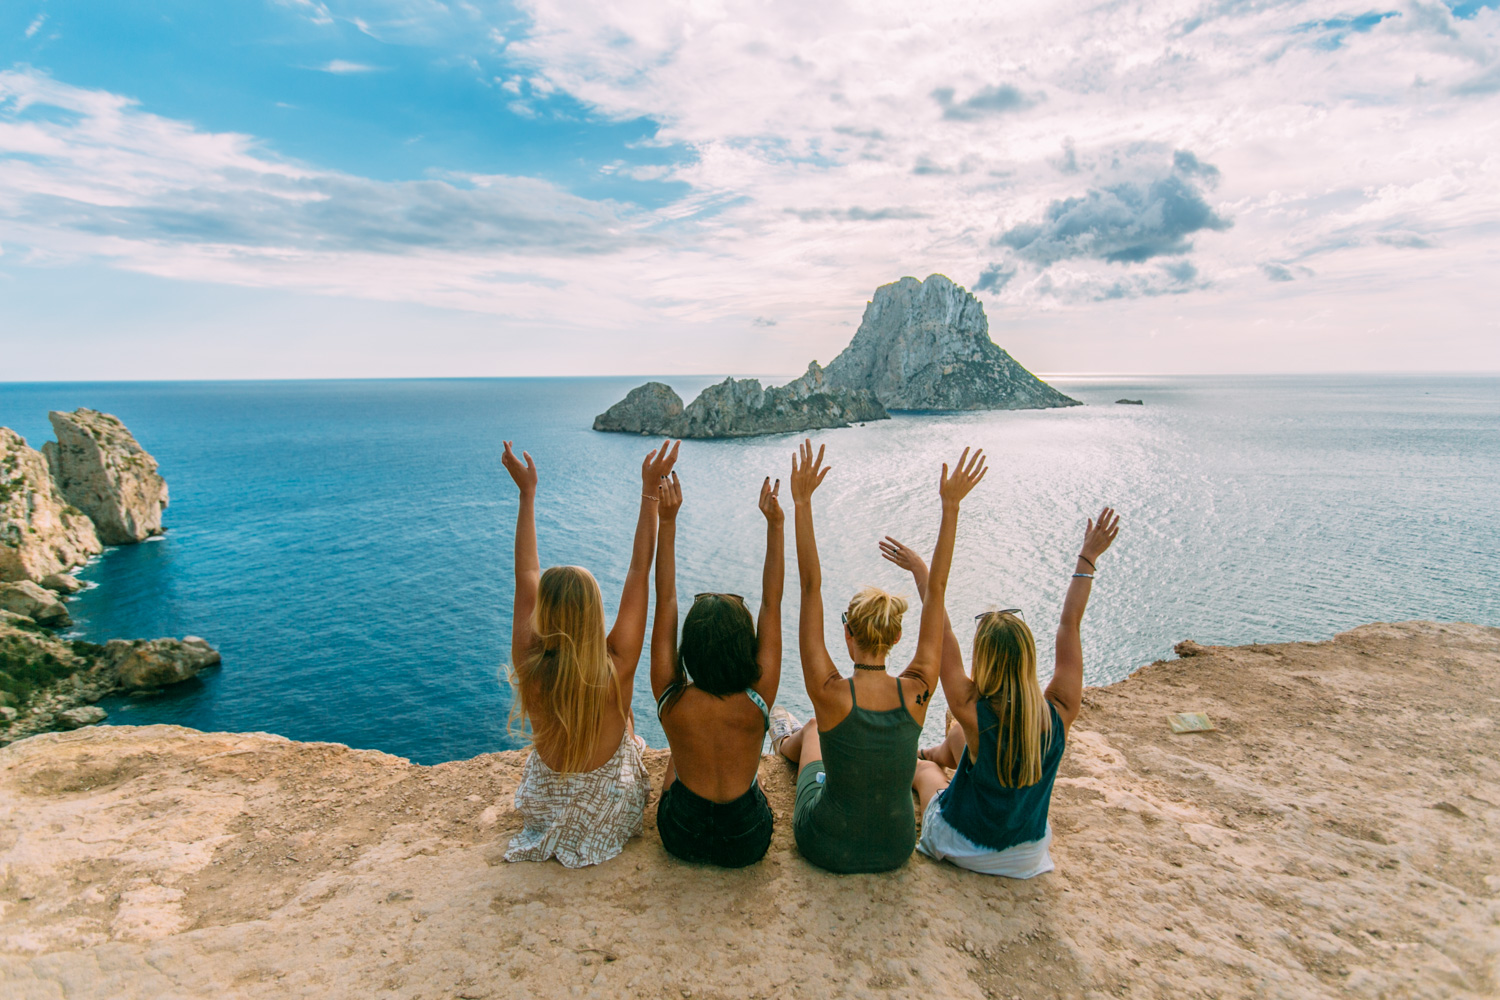 es-vedra-ibiza-atlantis-sea-nyphms-healing-legends-ufo-rochelle-fox-wanderlife-travel-tips-Europe-island-party-magnetic-field-magnetic23-of-24